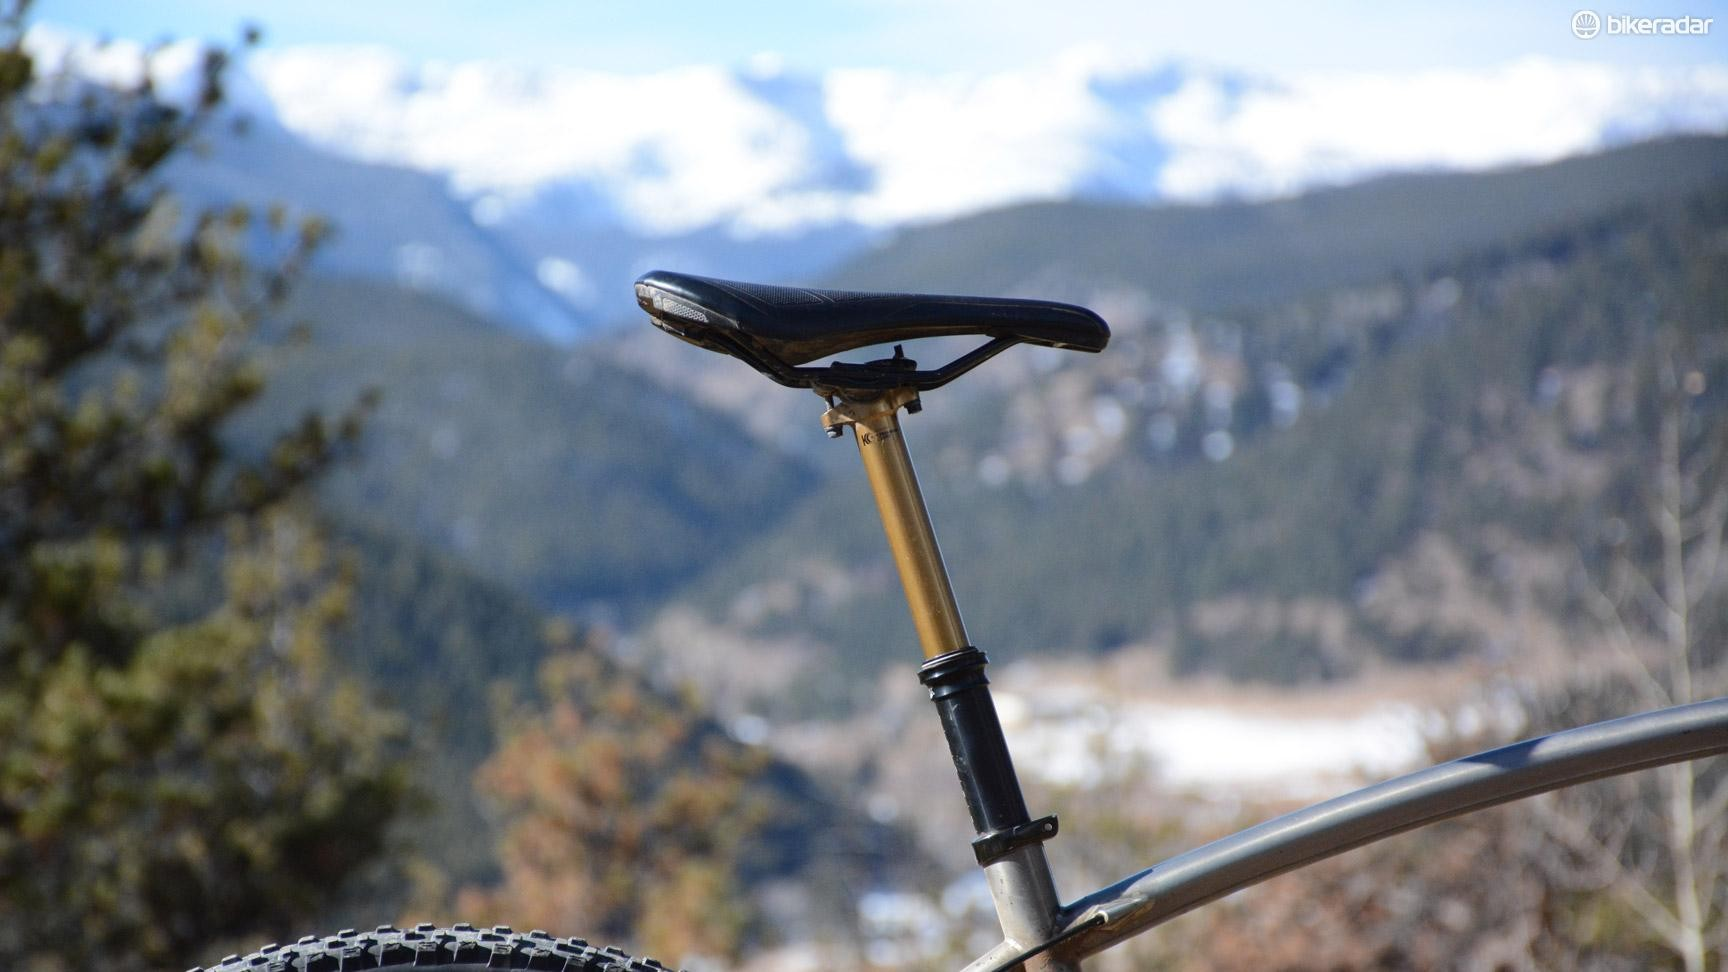 A dropper post is a vital upgrade to any mountain bike